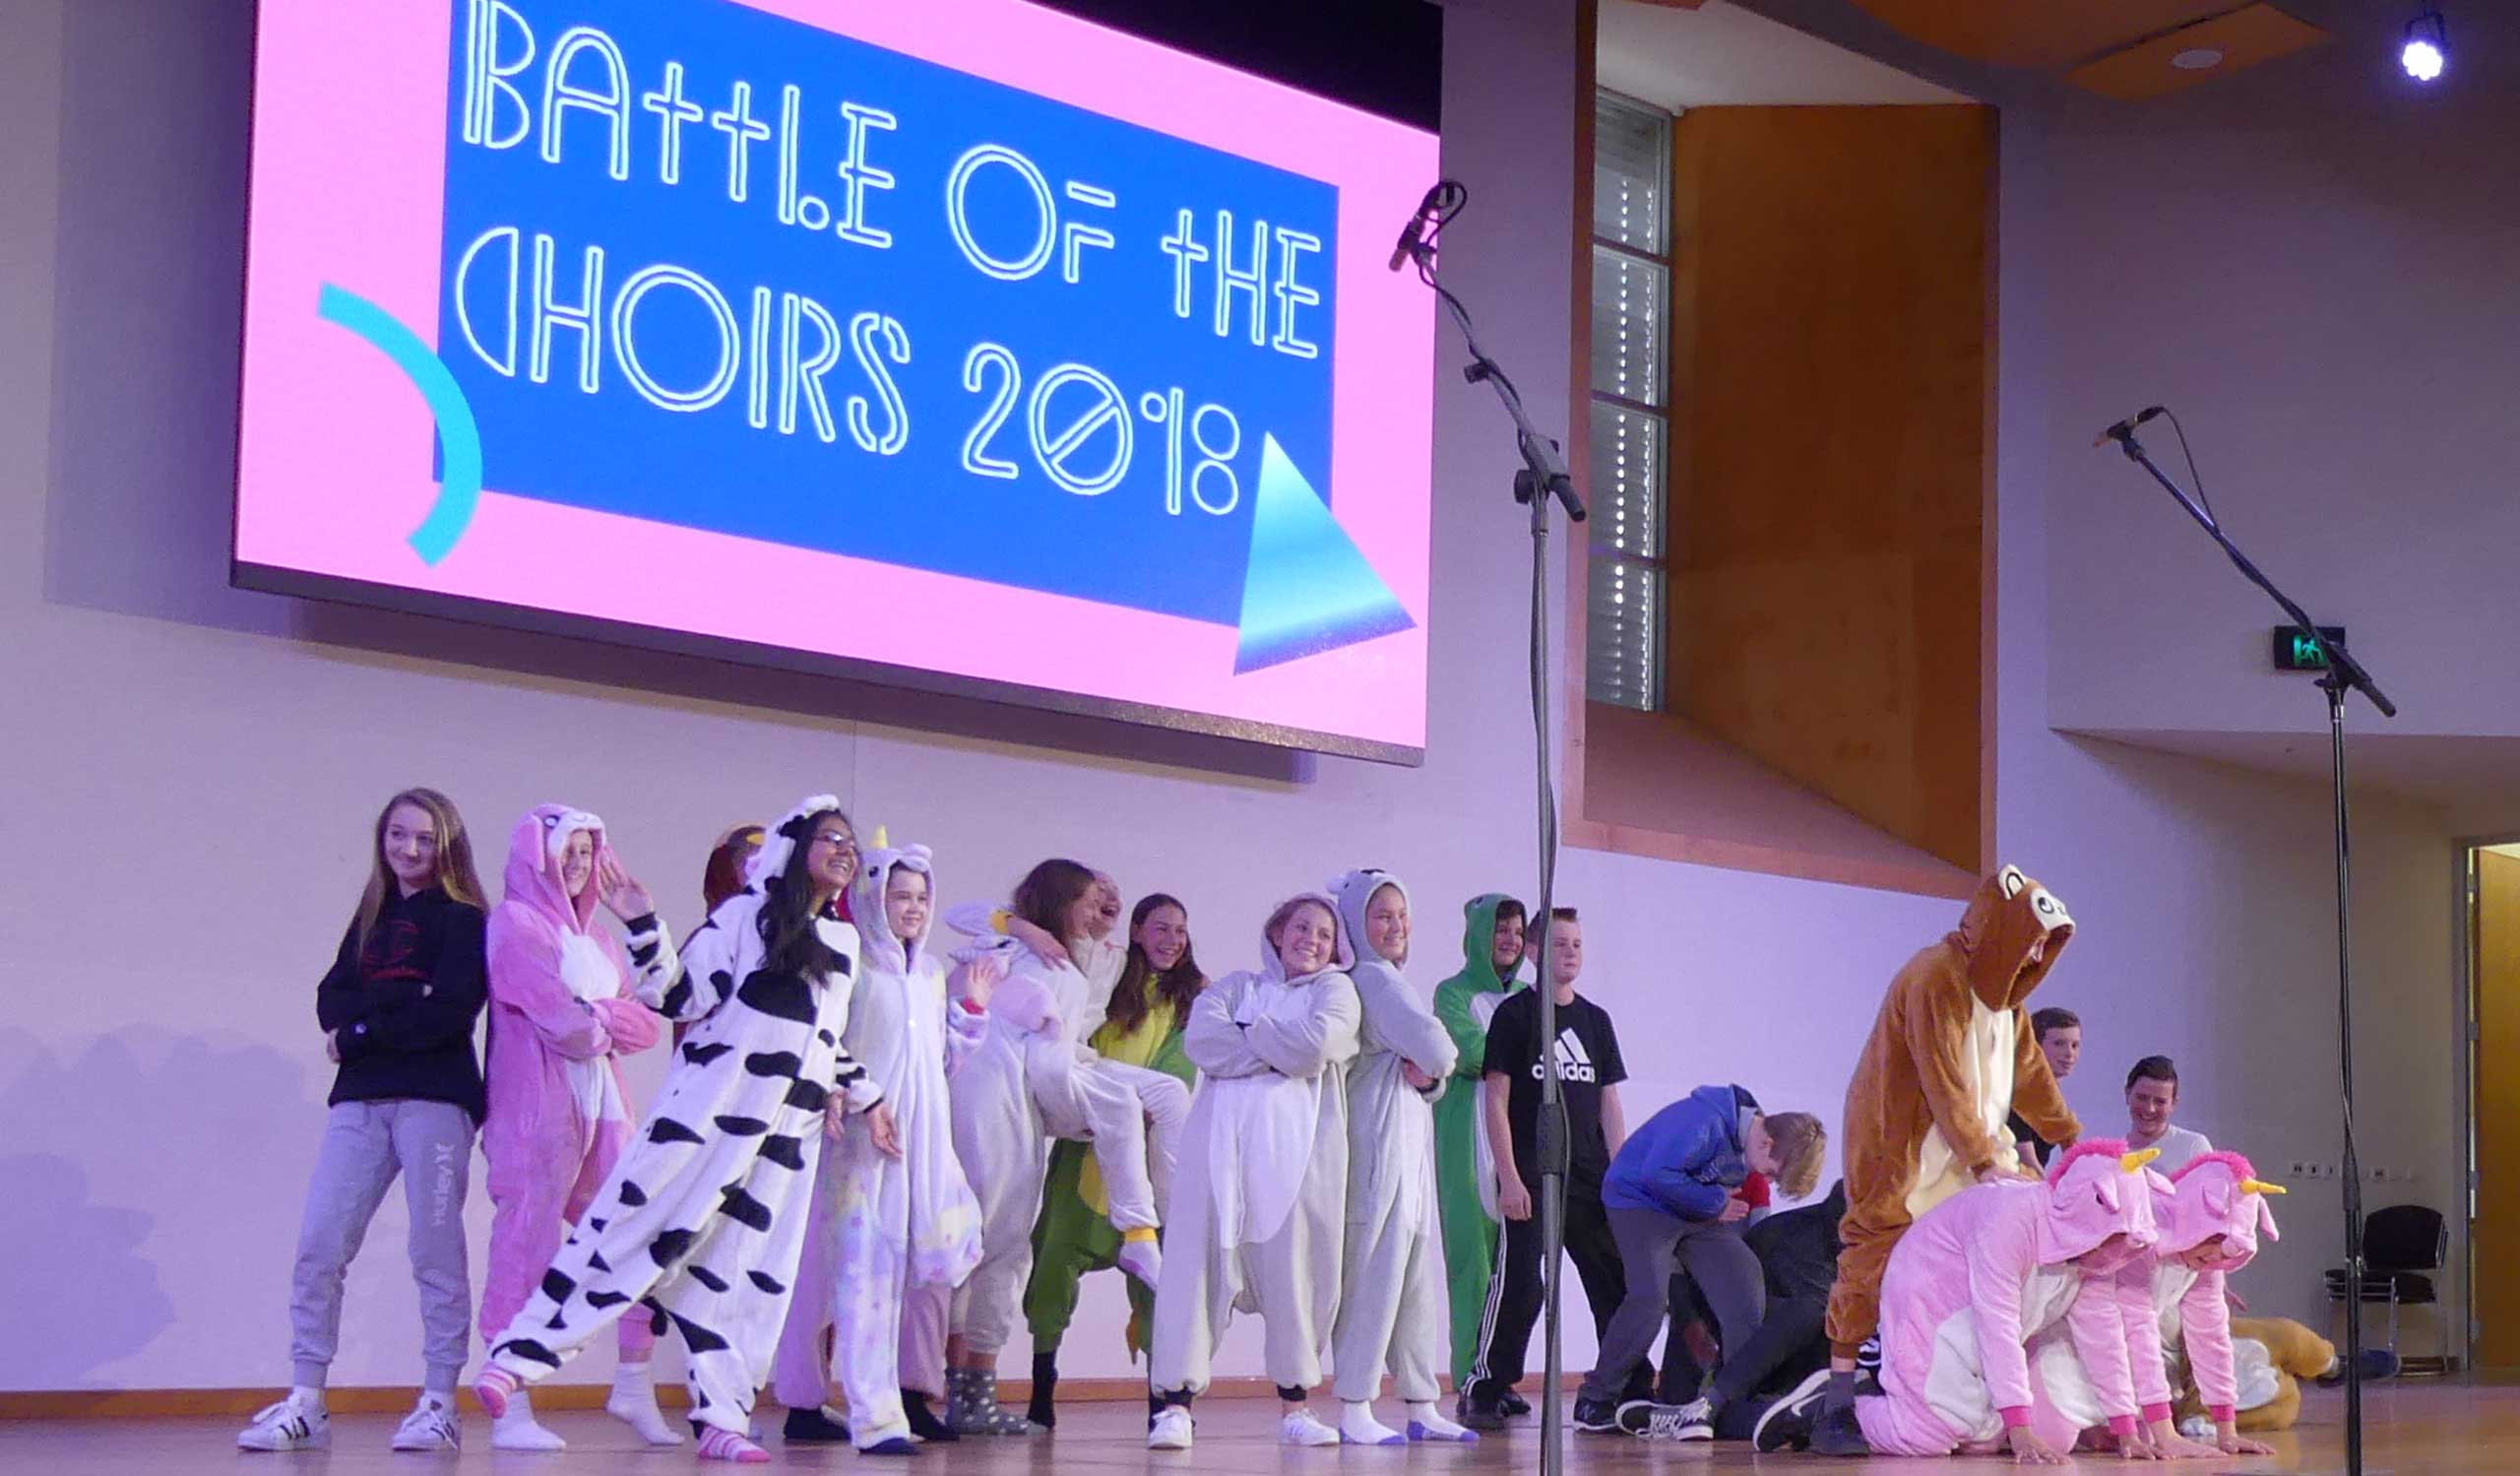 Year-7-Battle-of-the-Choirs-3